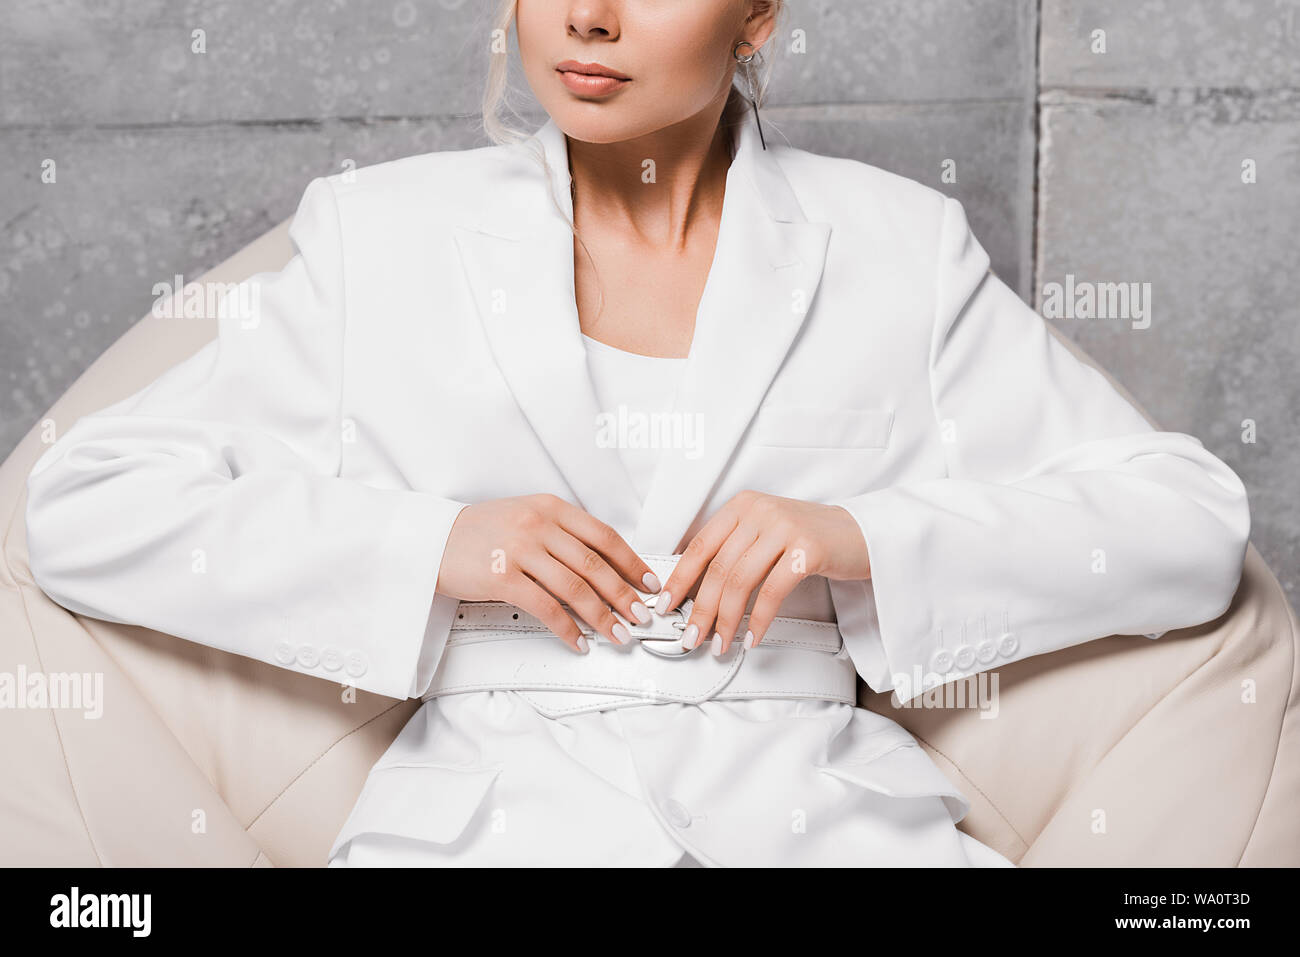 Excellent Cropped View Of Woman Sitting On Soft Bean Bag Chair On Grey Andrewgaddart Wooden Chair Designs For Living Room Andrewgaddartcom